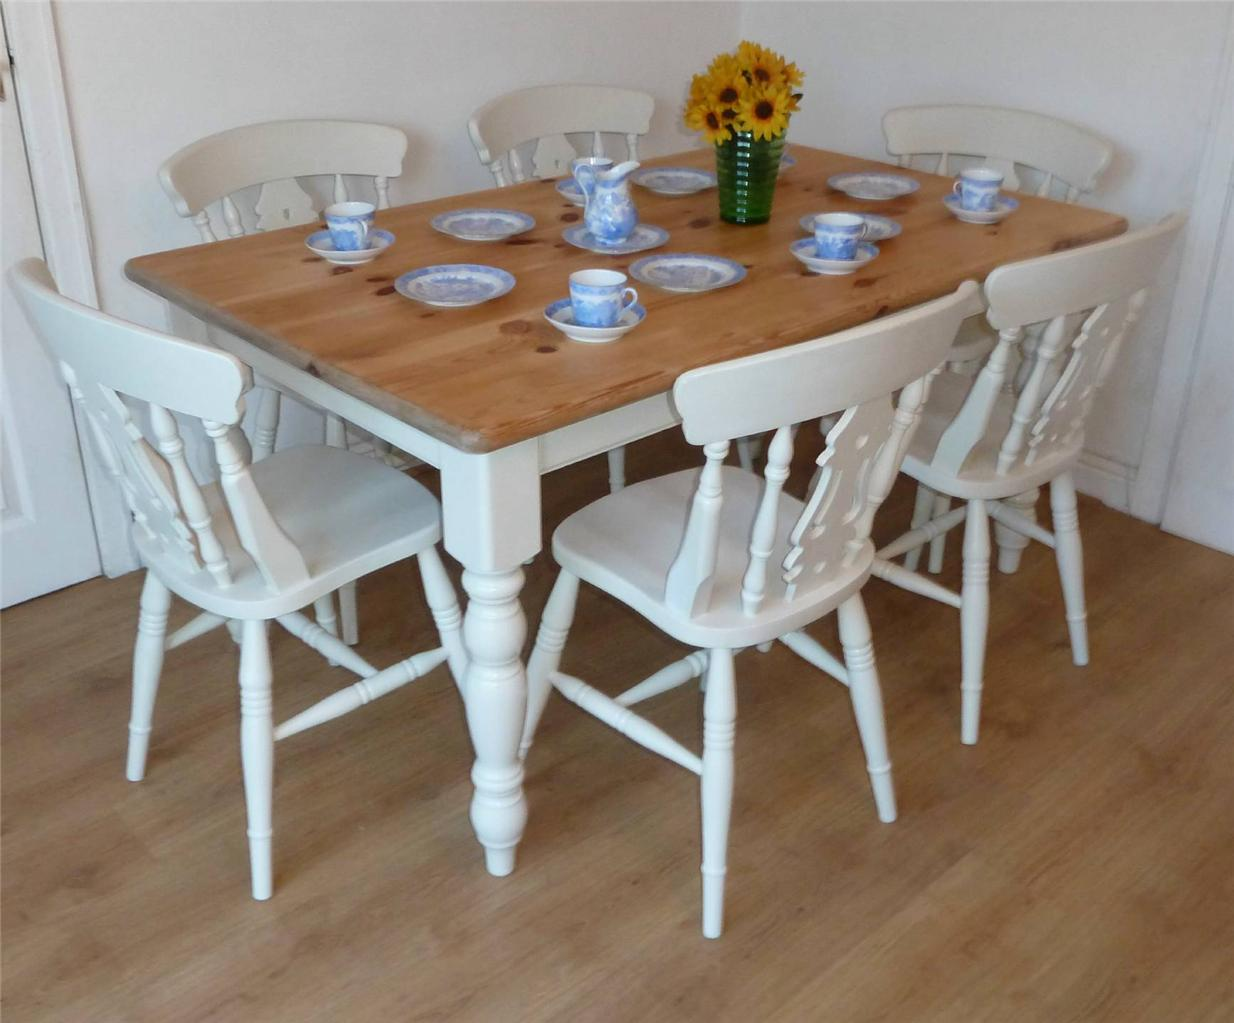 Shabby Chic farmhouse Painted Pine Table and 6 Chairs